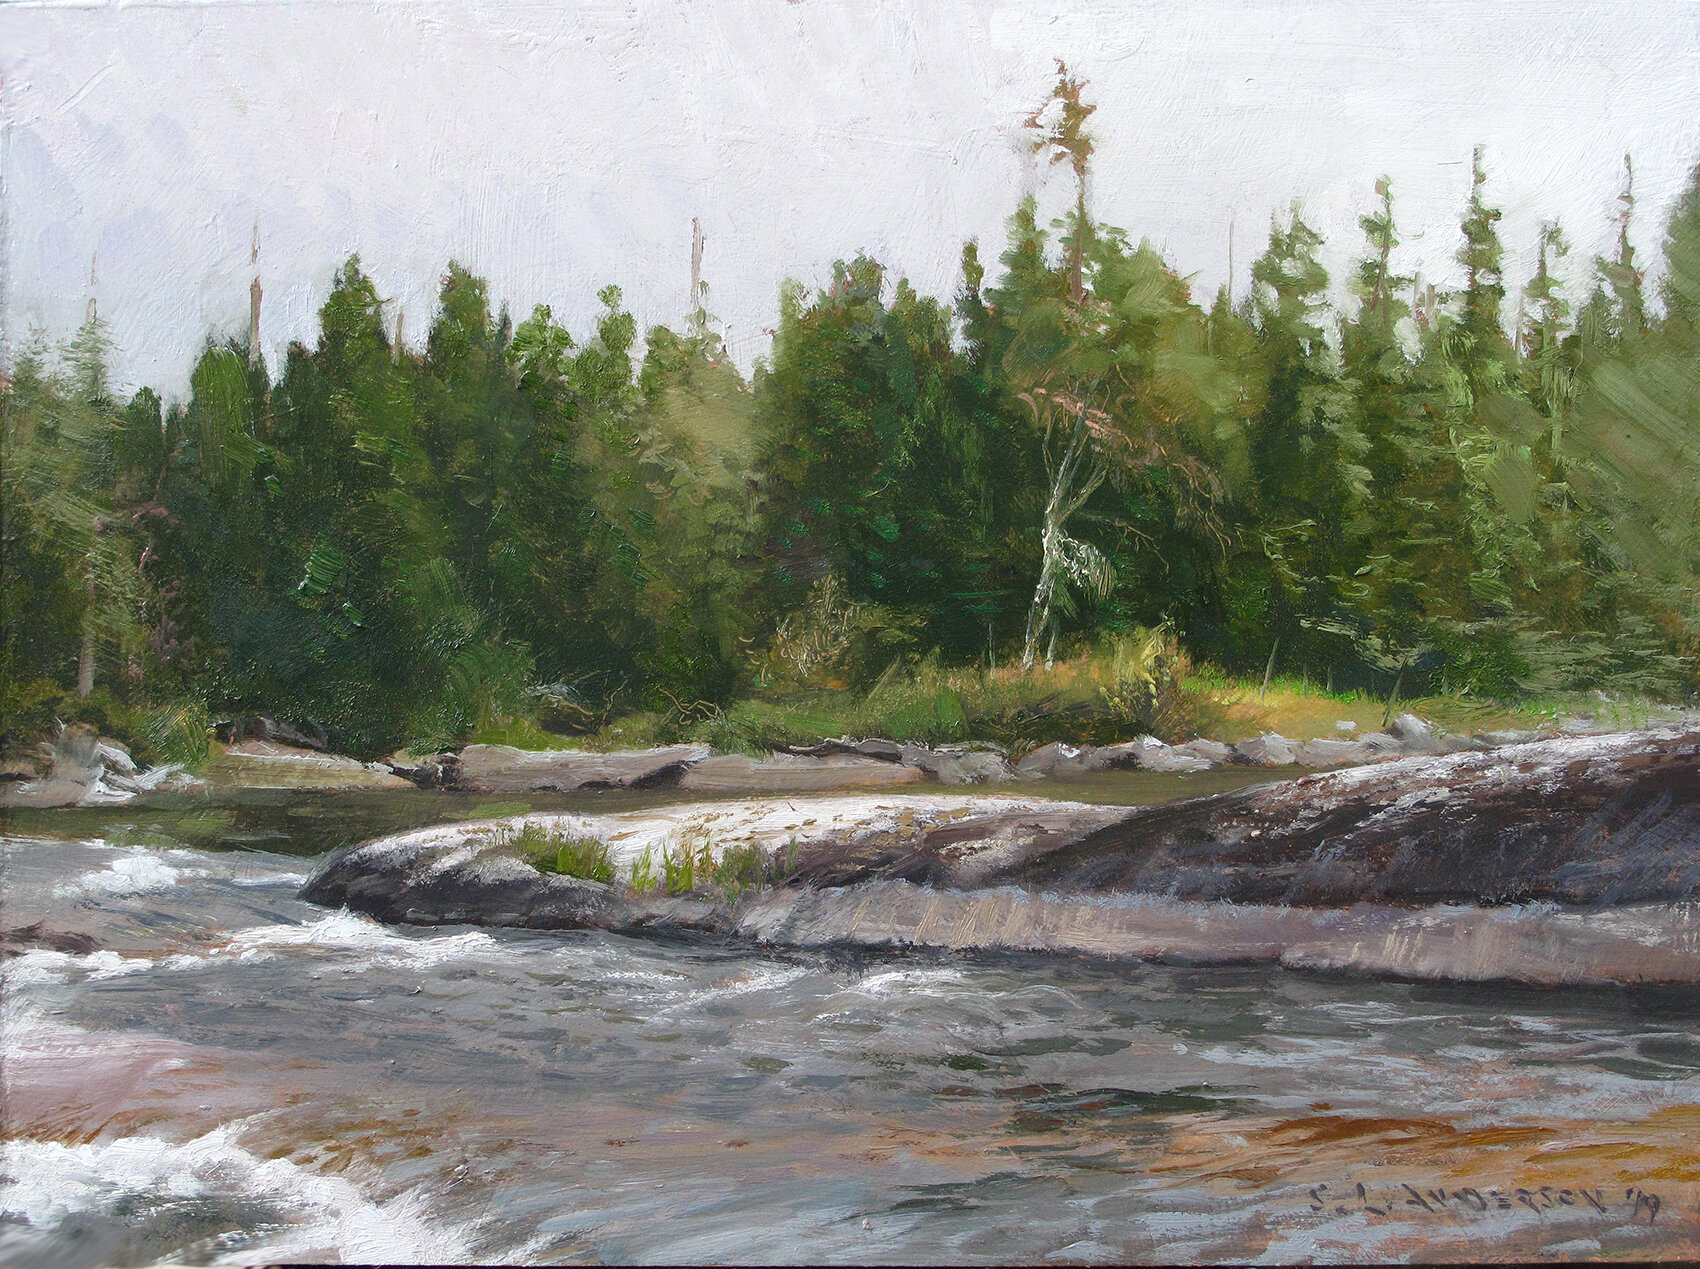 Quetico Tableau    12 x 26 oil on panel  This park is just across the border. Canada's Boundary Waters canoe and wilderness area per sé. The character of the rock always amazes. I was told by a geology guy that the exposed rock in this general area is some the oldest in the hemisphere. I told my fellow canoe tripper this, who lives in the very rocky Connecticut. He replied that's what a geology guy told him about his rock. I guess your rock isn't cool unless it's the oldest.